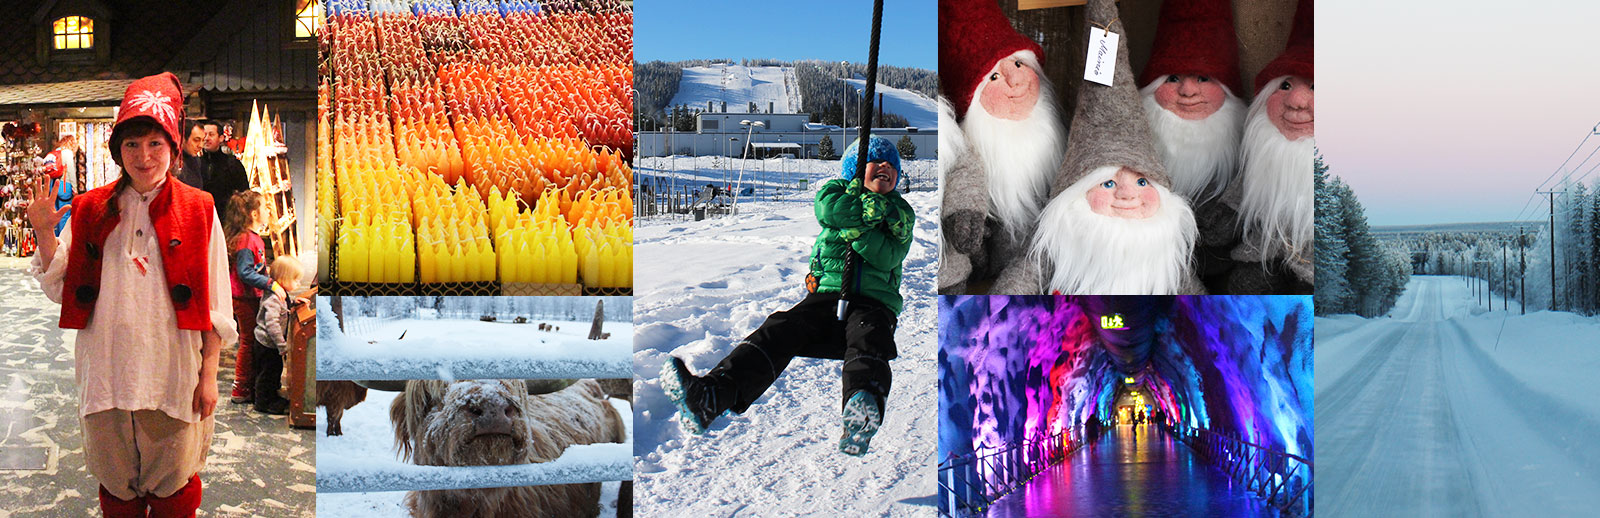 Fun things to do in Finland on Christmas holiday